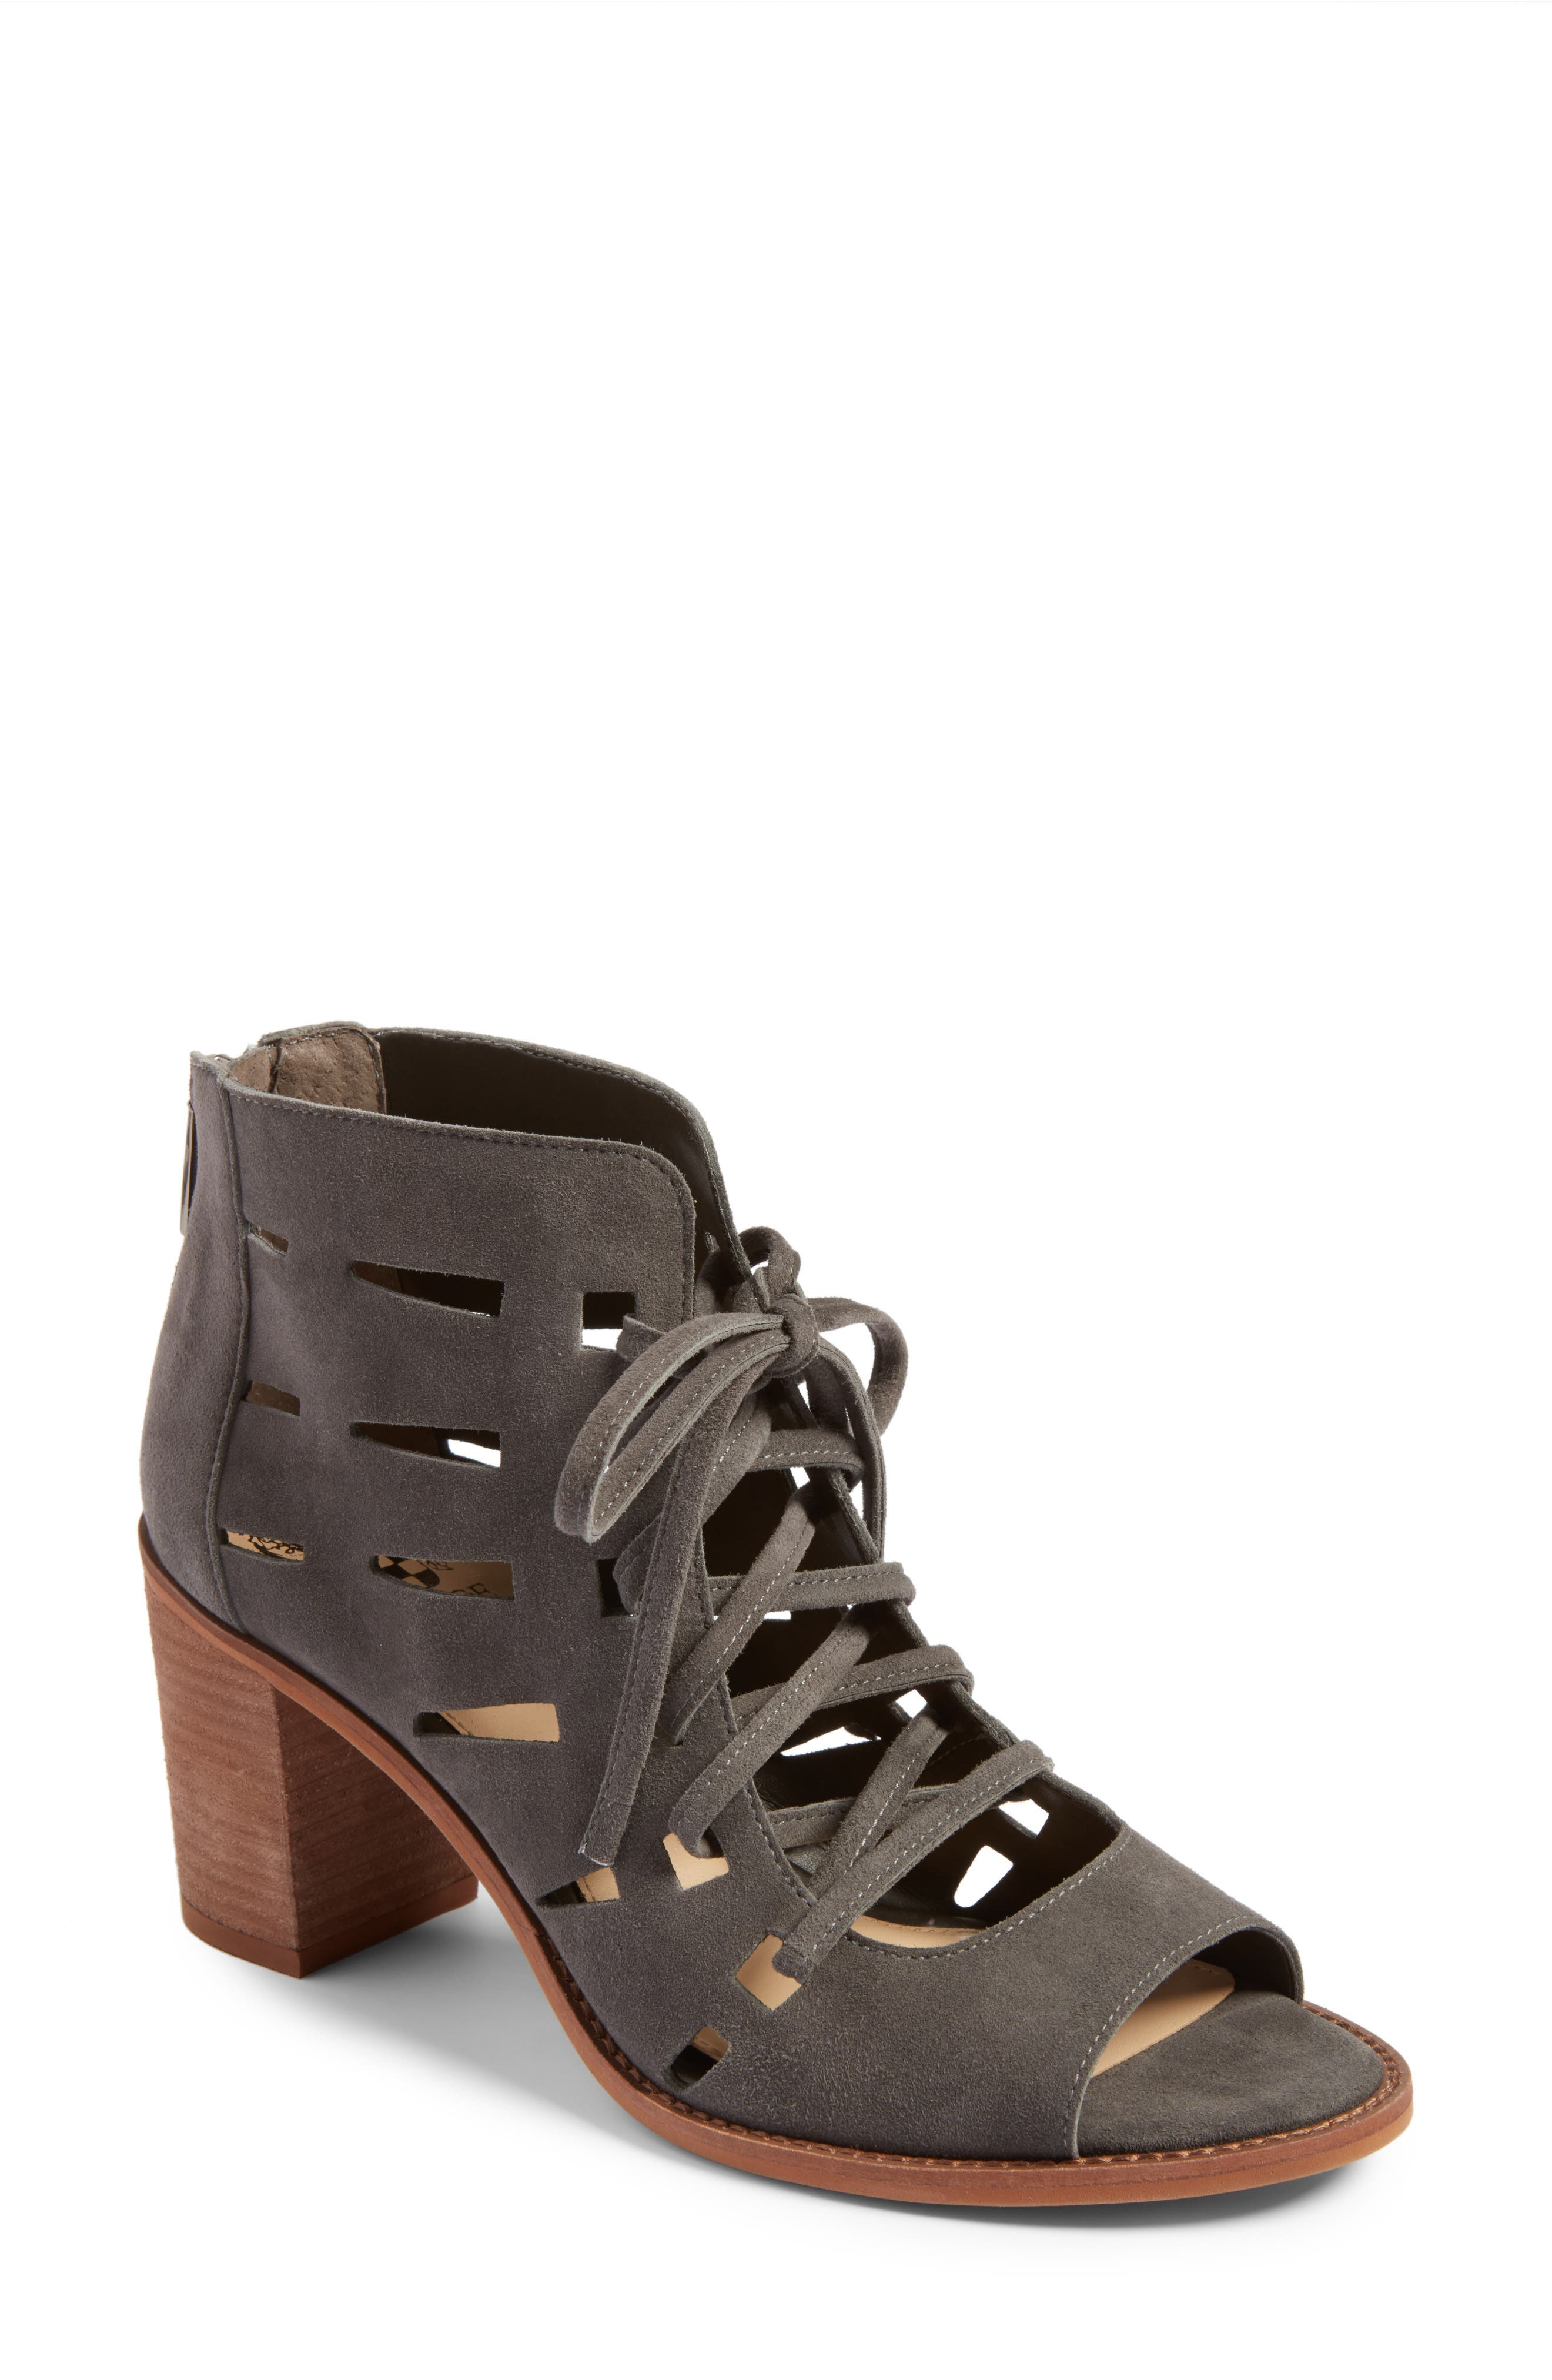 Tressa Perforated Lace-Up Sandal,                             Main thumbnail 1, color,                             Greystone Suede